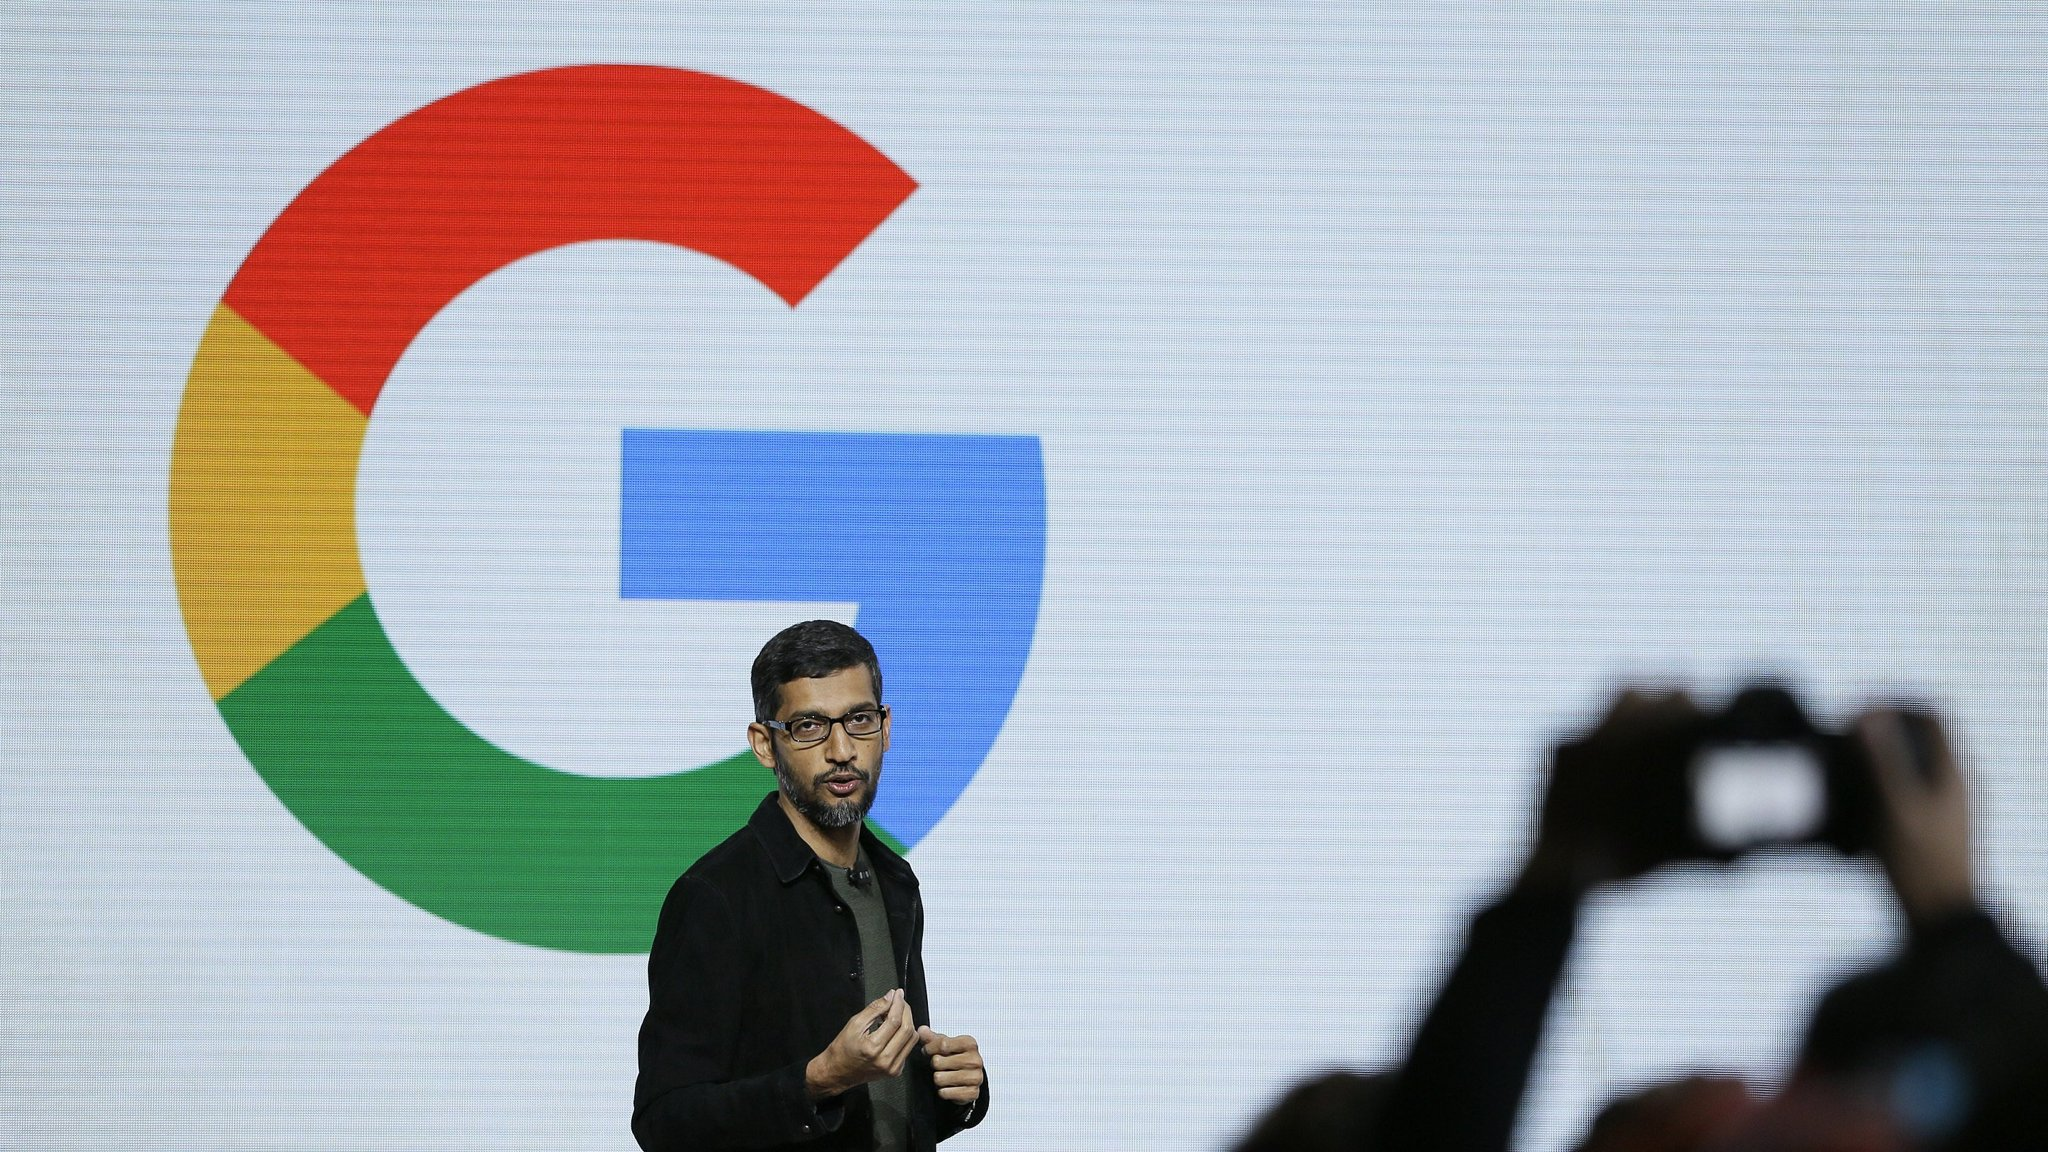 Alphabet worries investors with rise in Google costs